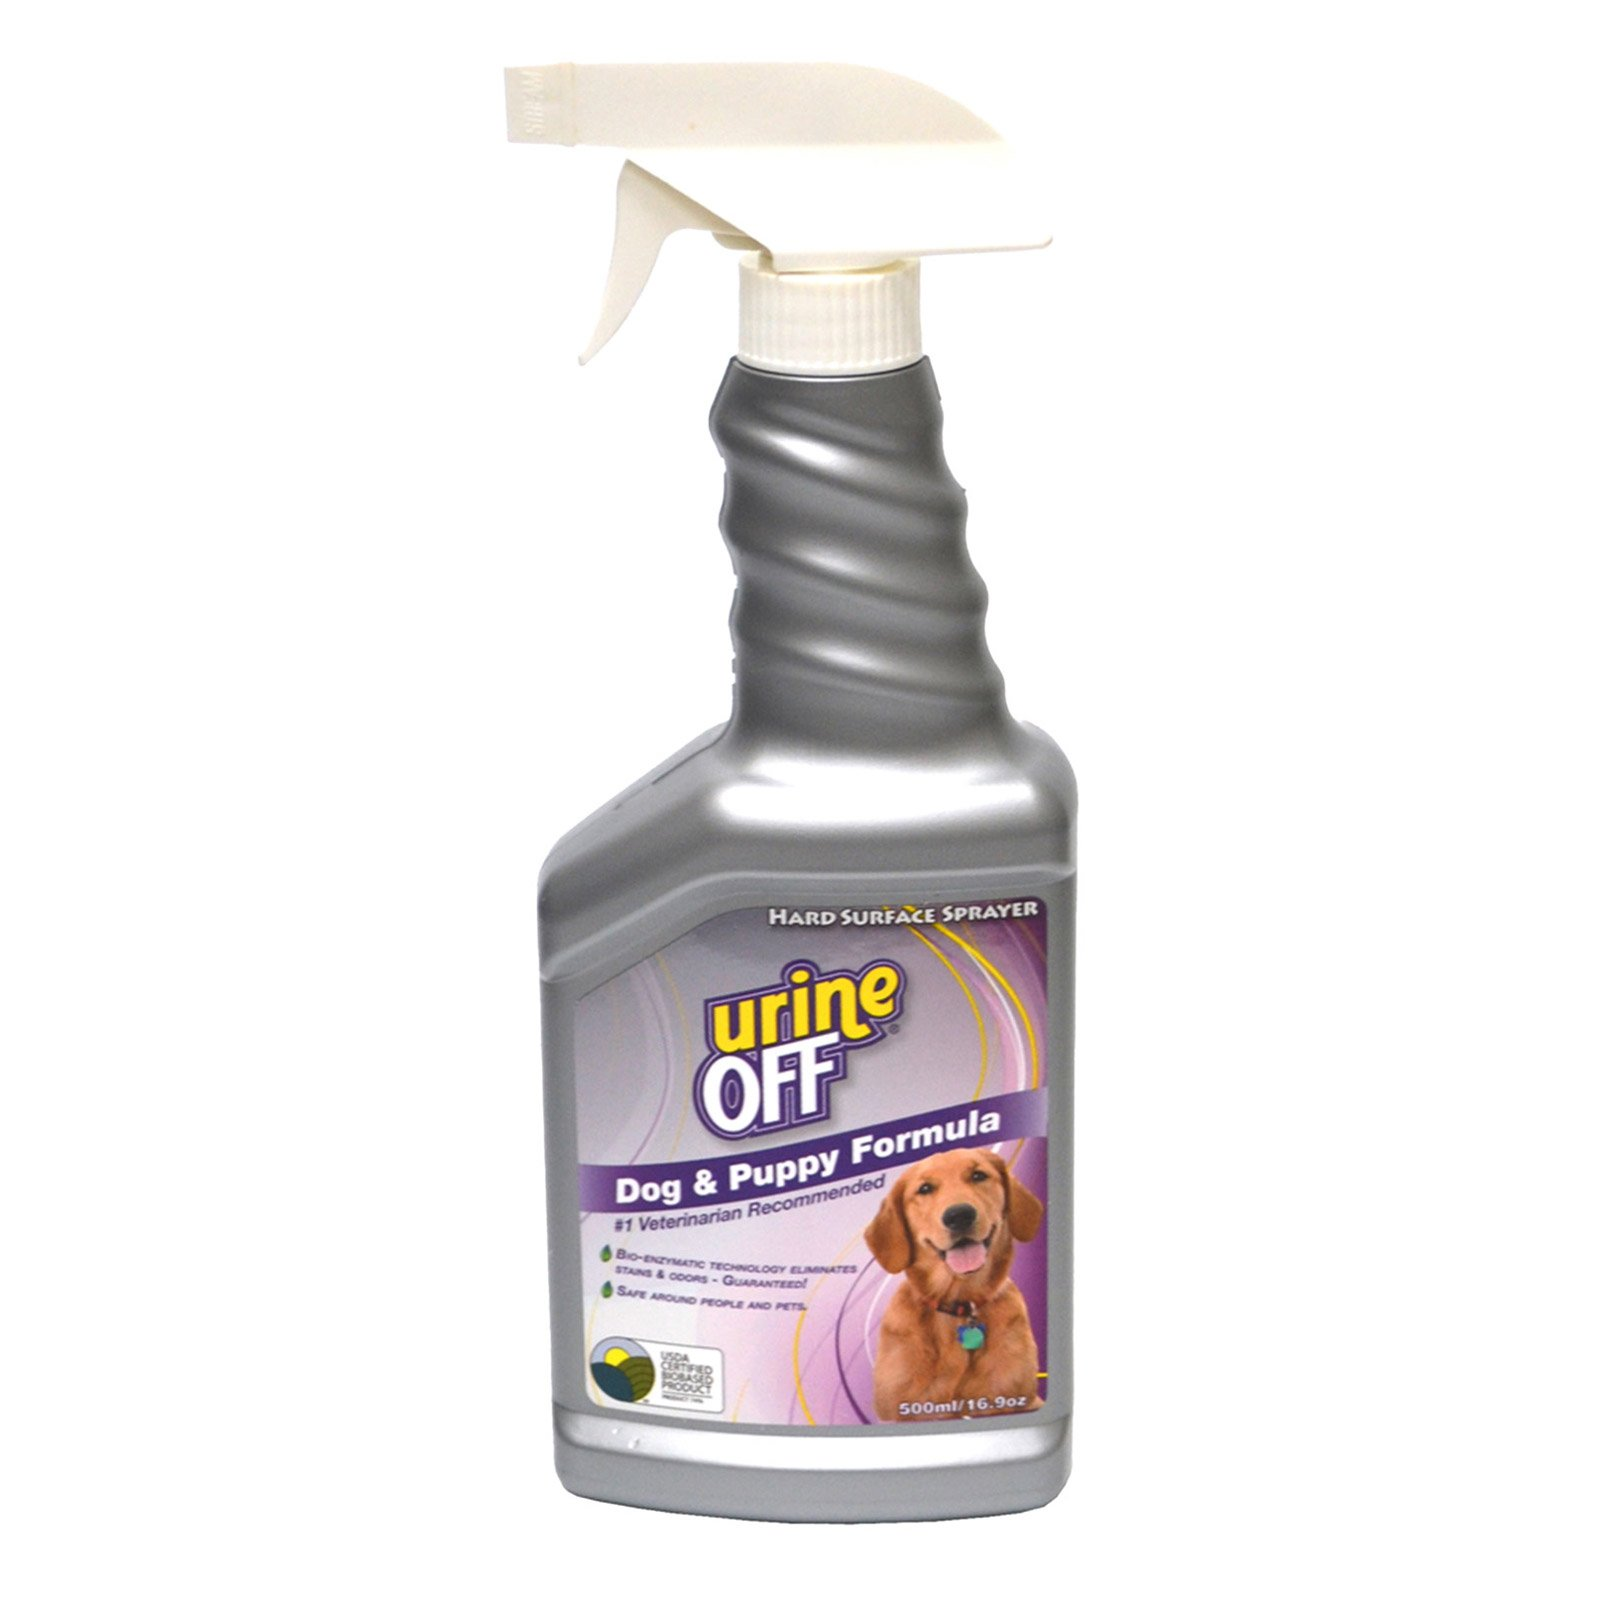 Urine Off for Dogs For Dogs & Puppies